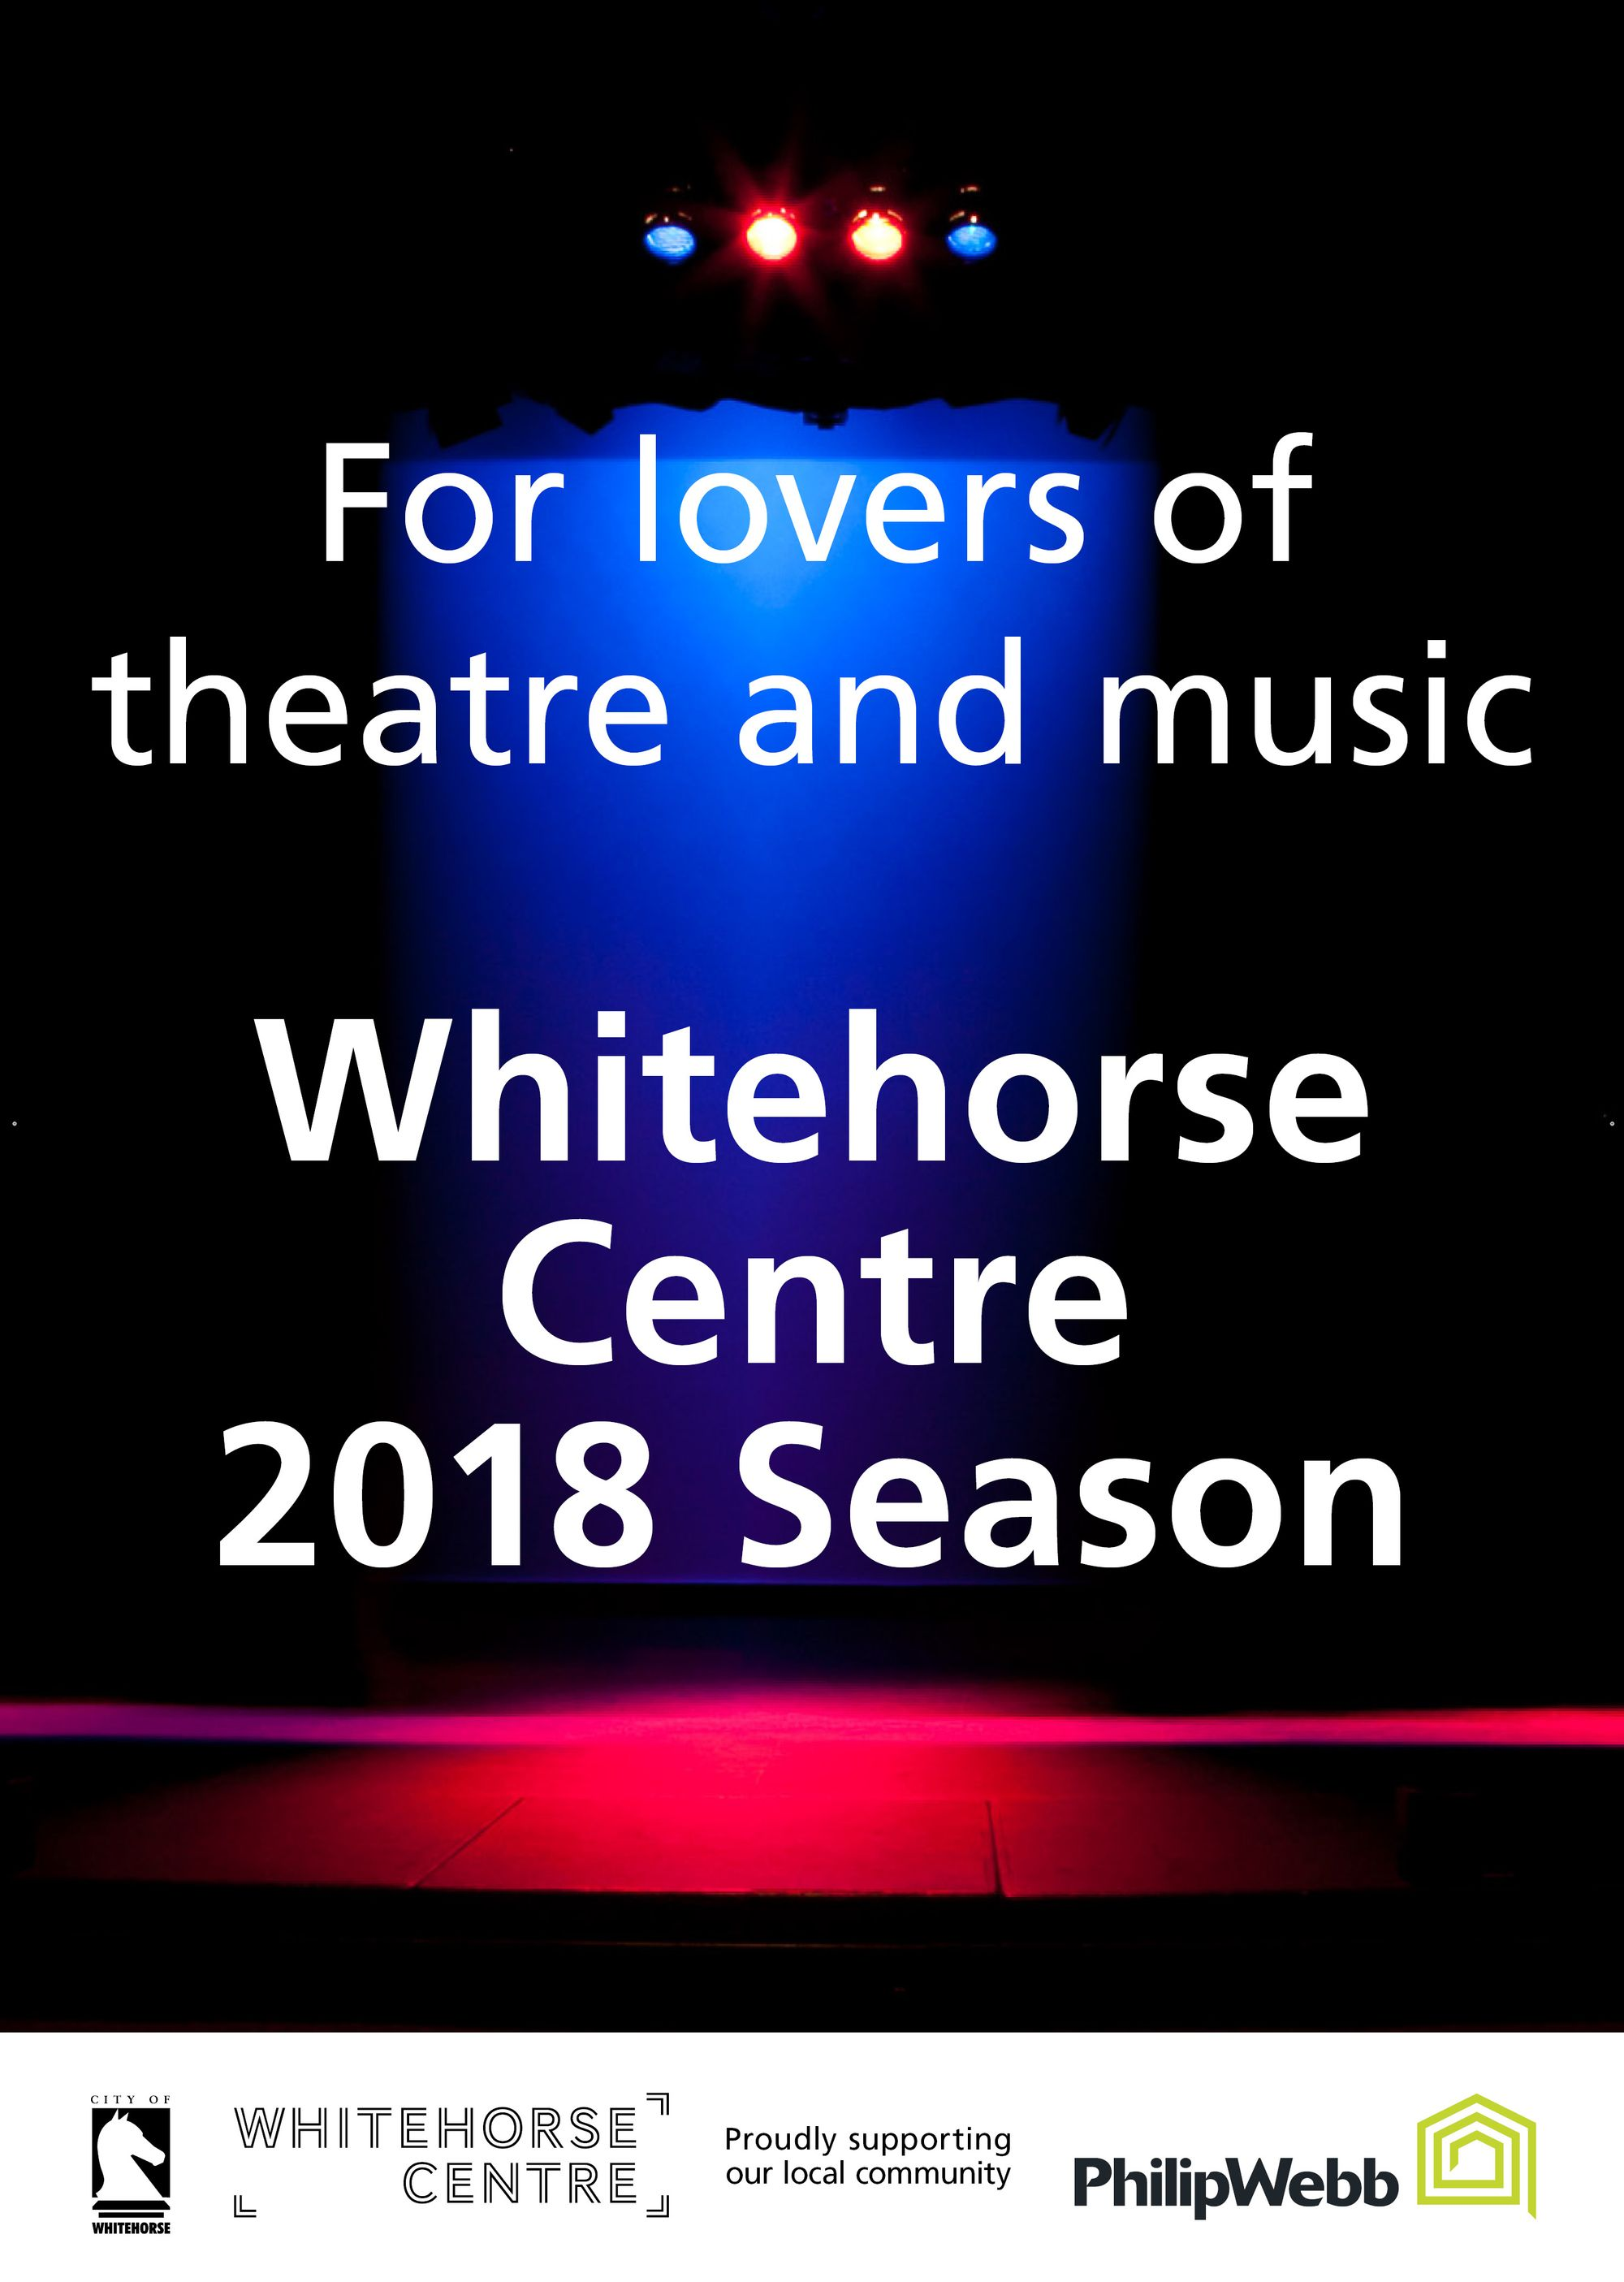 Whitehorse Centre 2018 Season